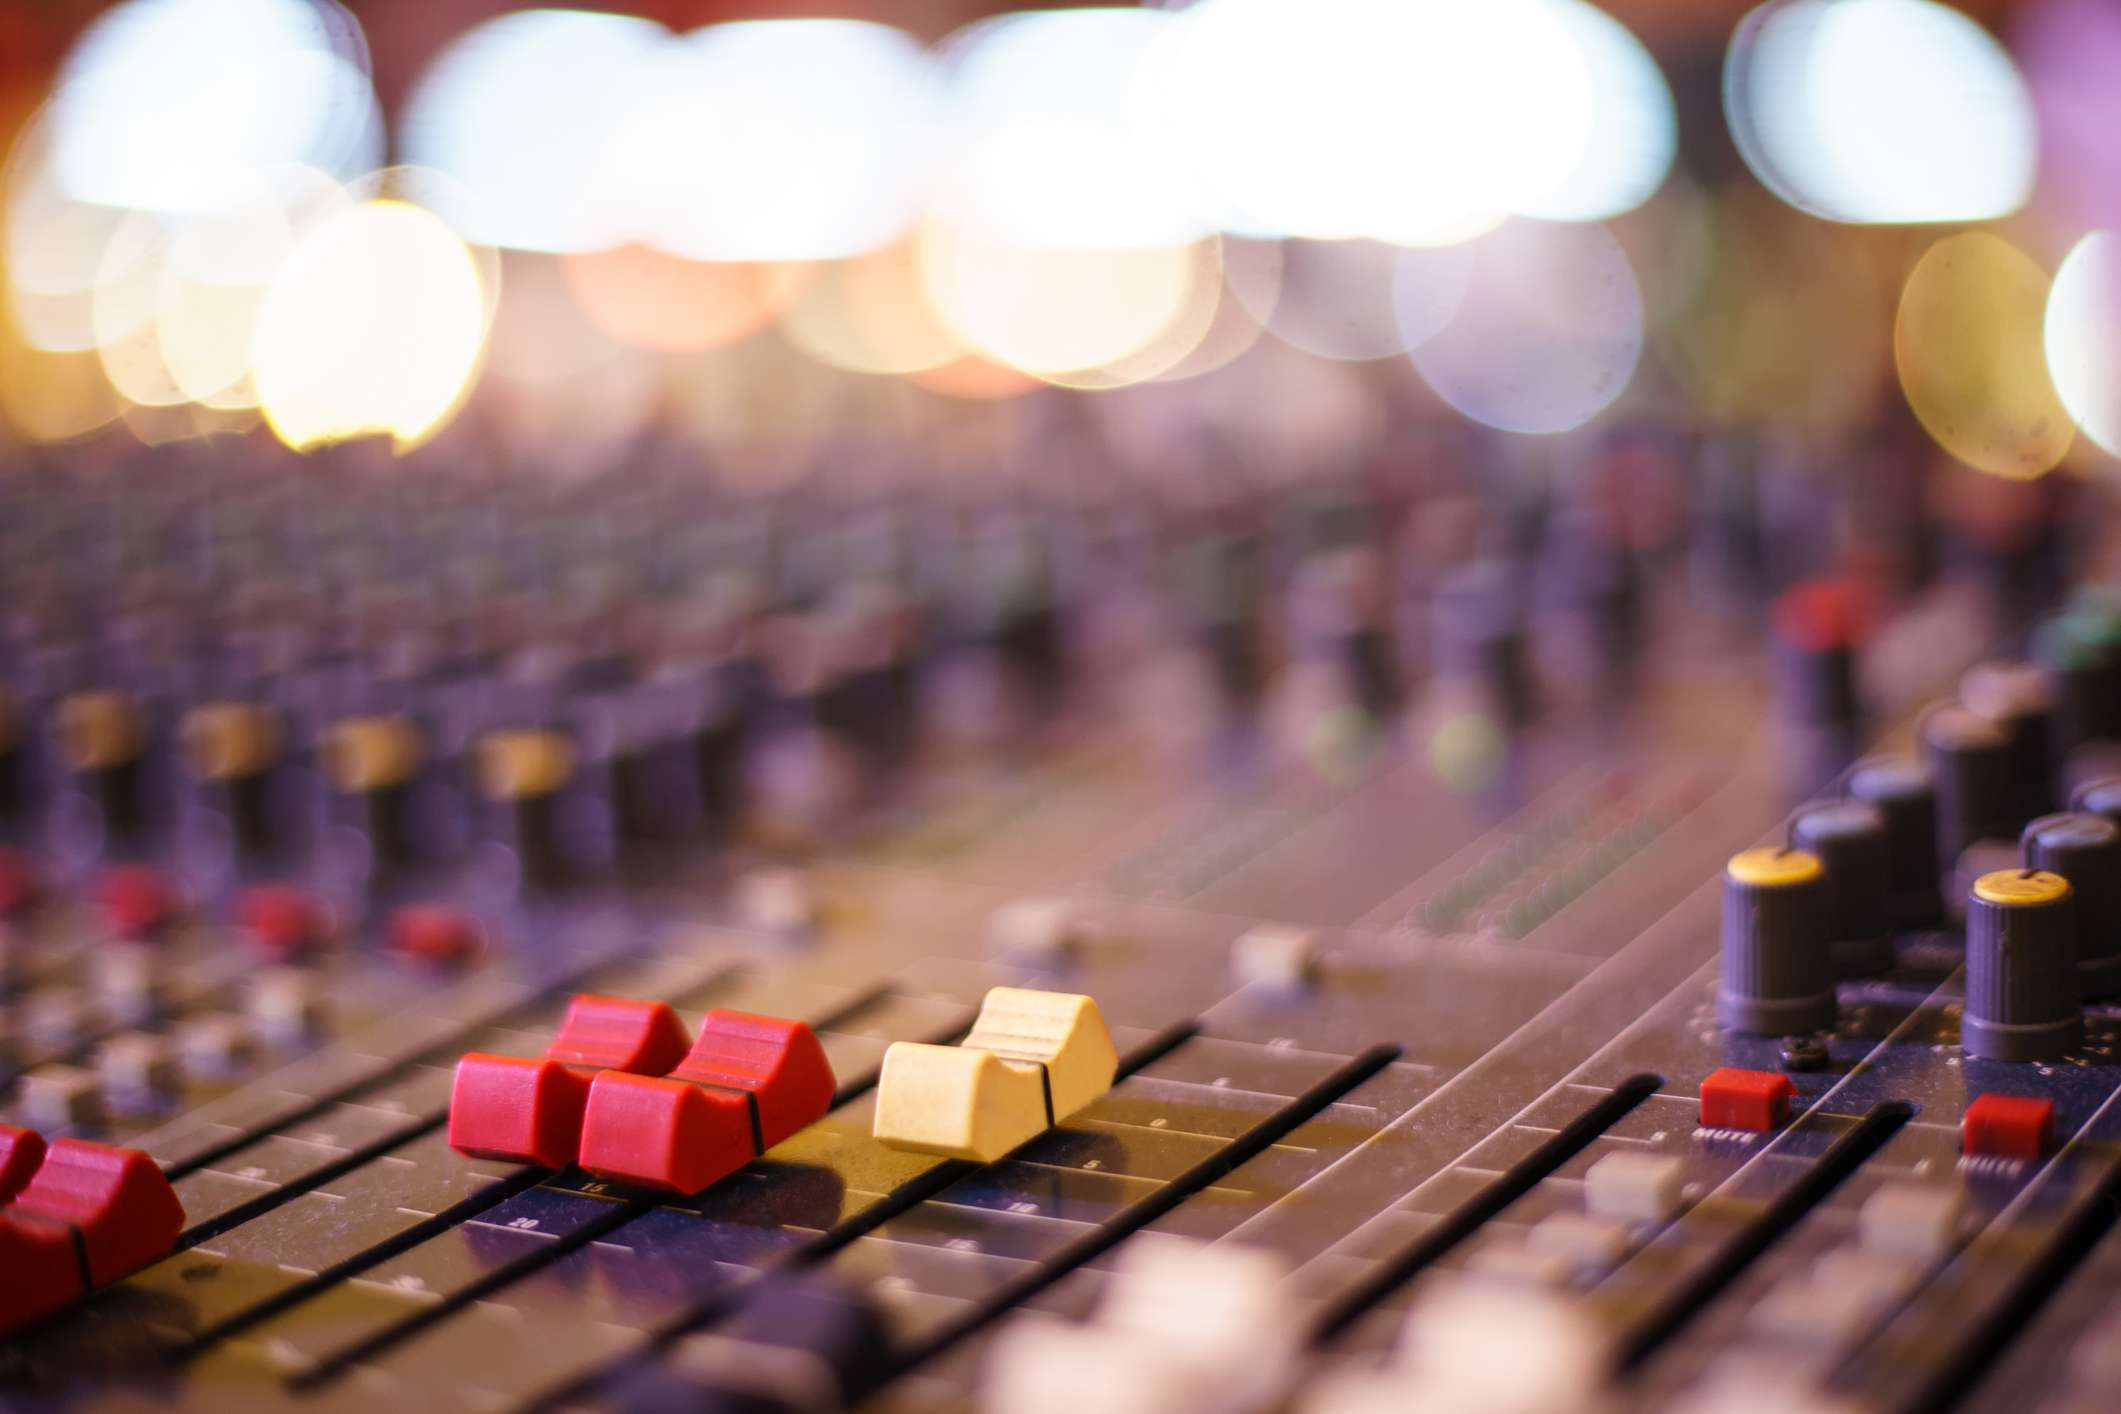 Audio sound mixer and amplifier equipment, sound acoustic musical mixing, engineering concept background.